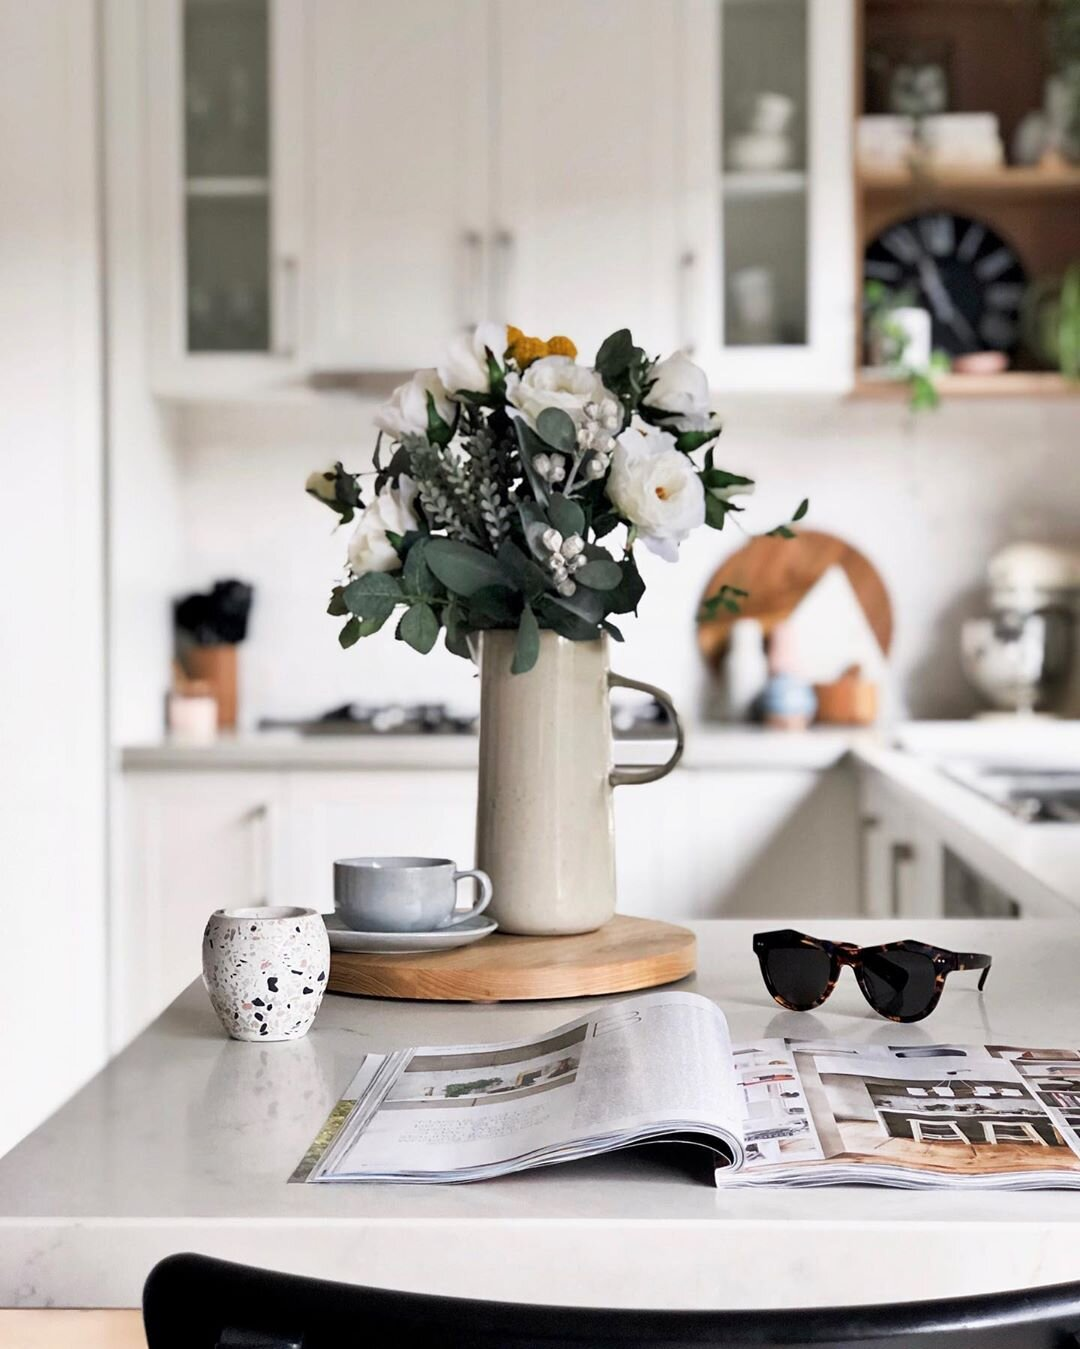 A beautiful vignette at the Kitchen bench. Source:  @white.grey.all.day